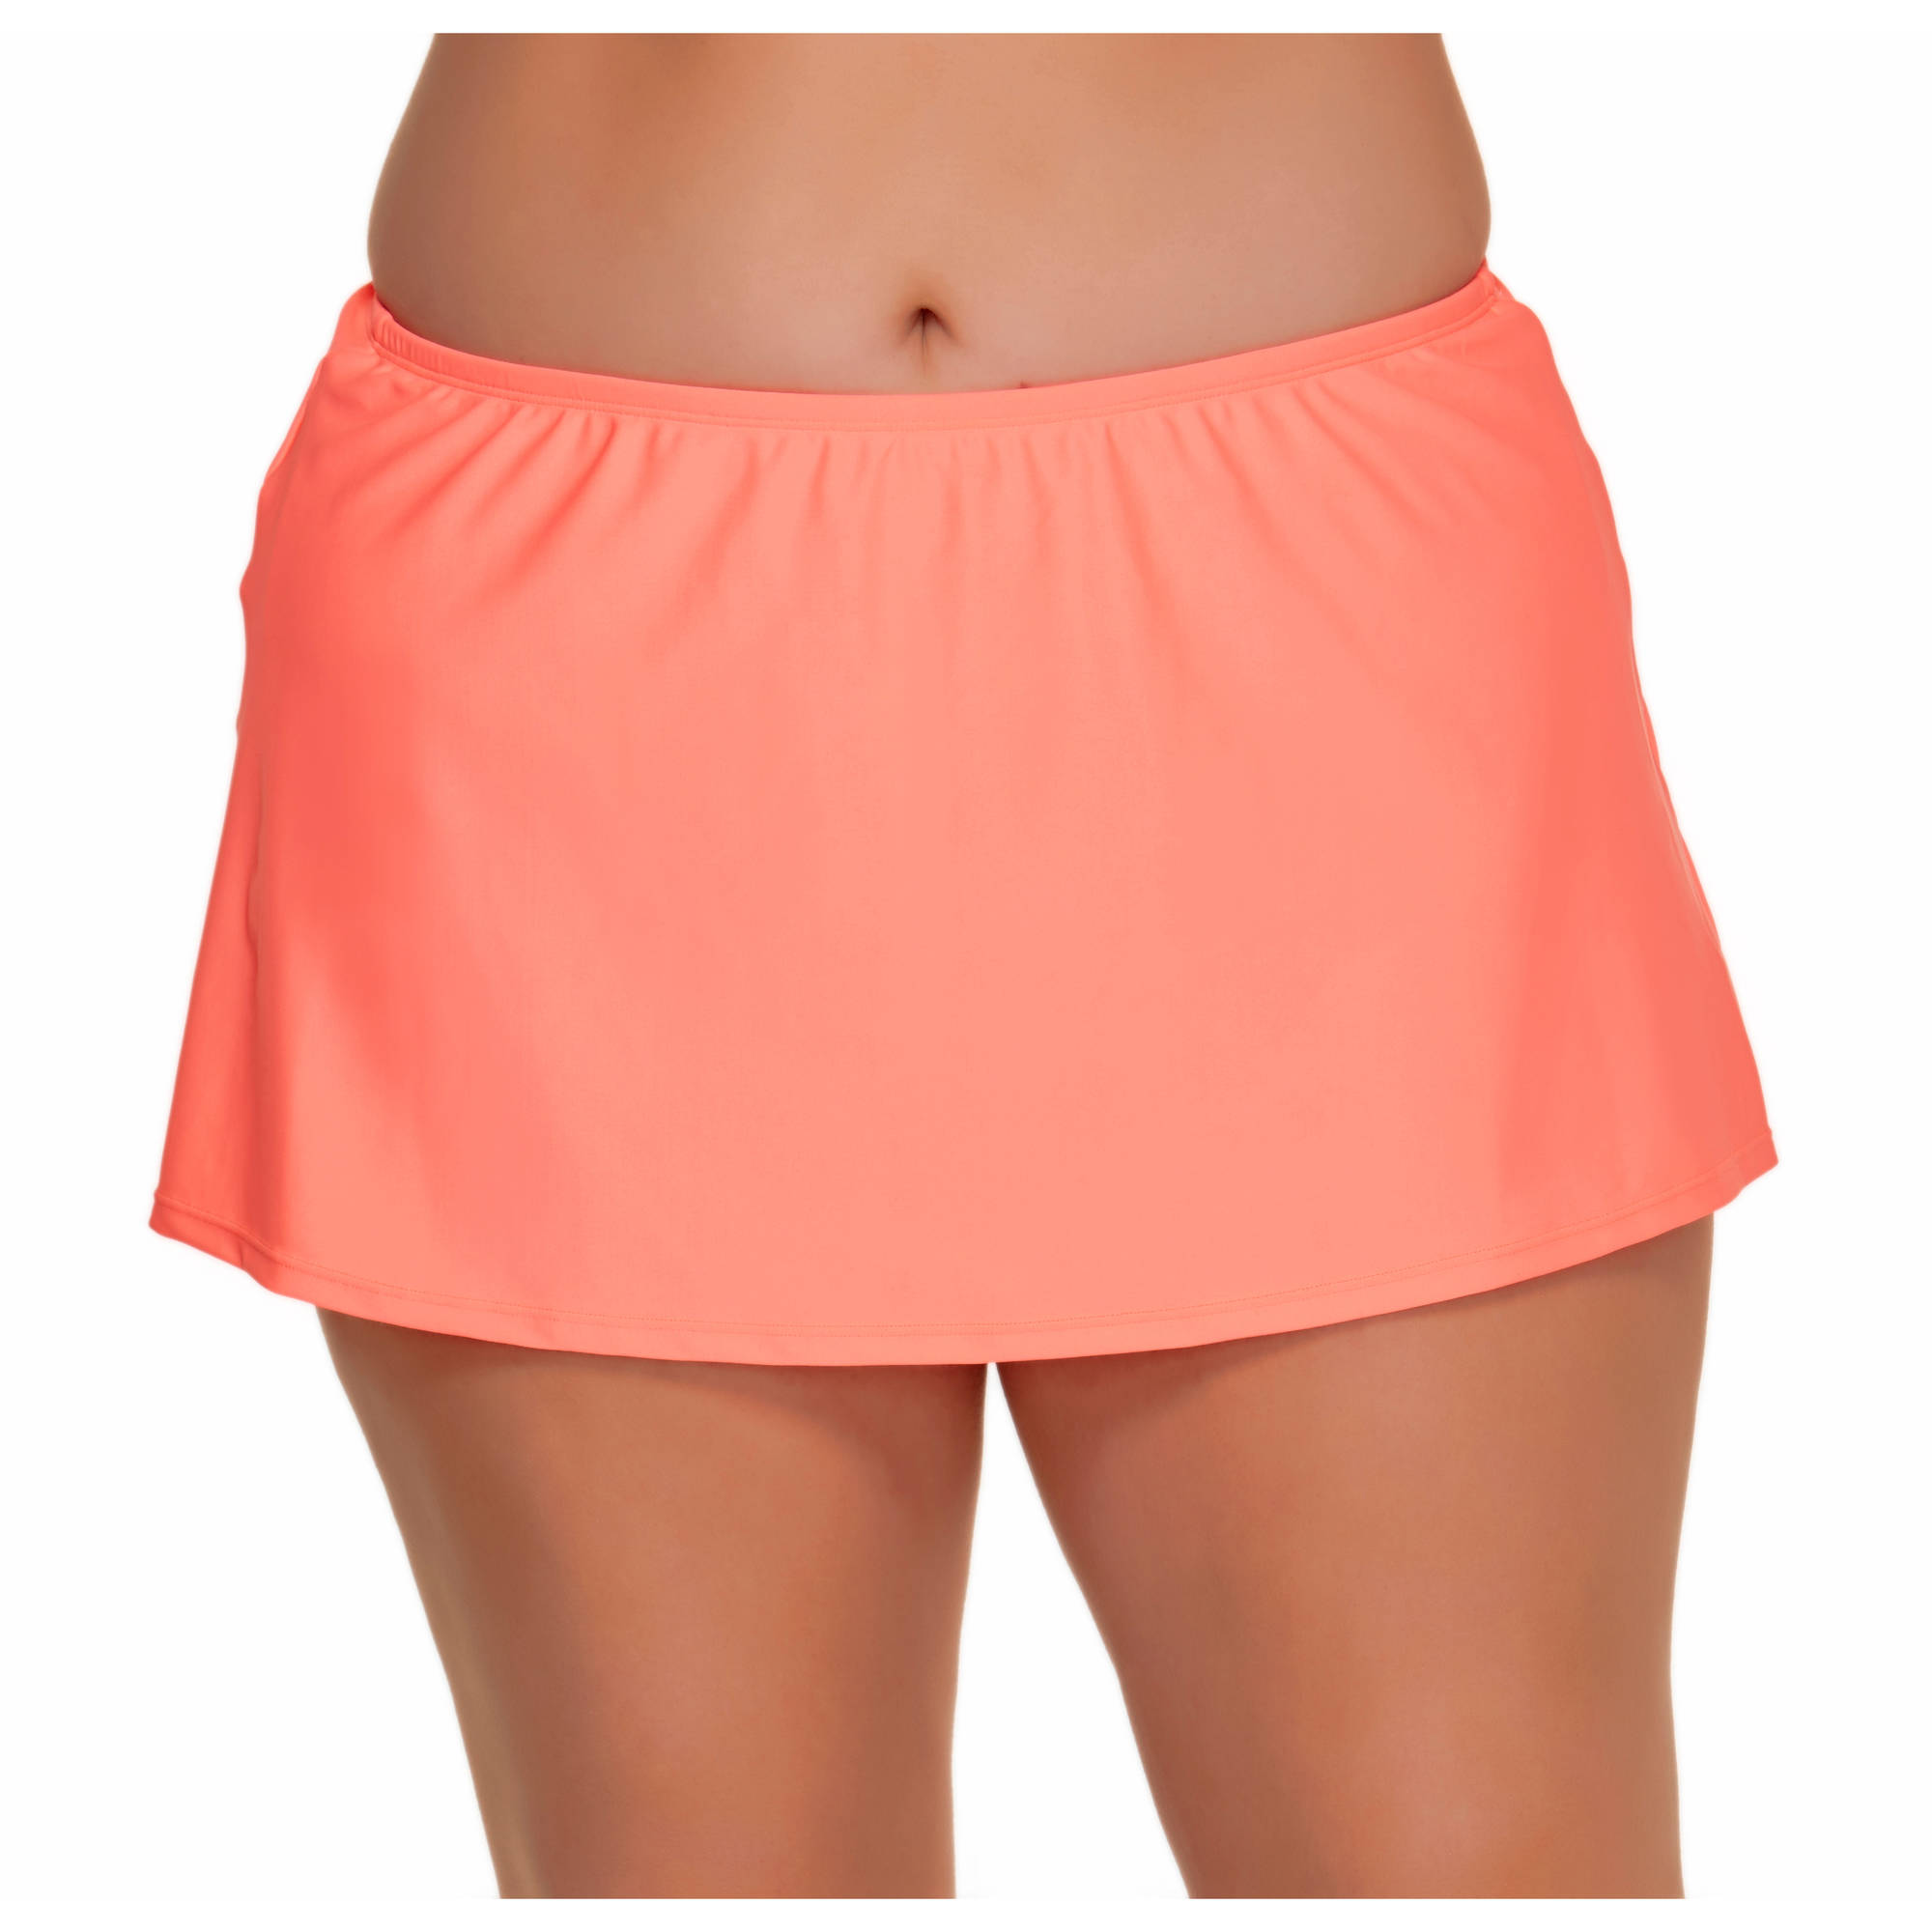 Catalina Women's Plus-Size Skirted Swimsuit Bottom